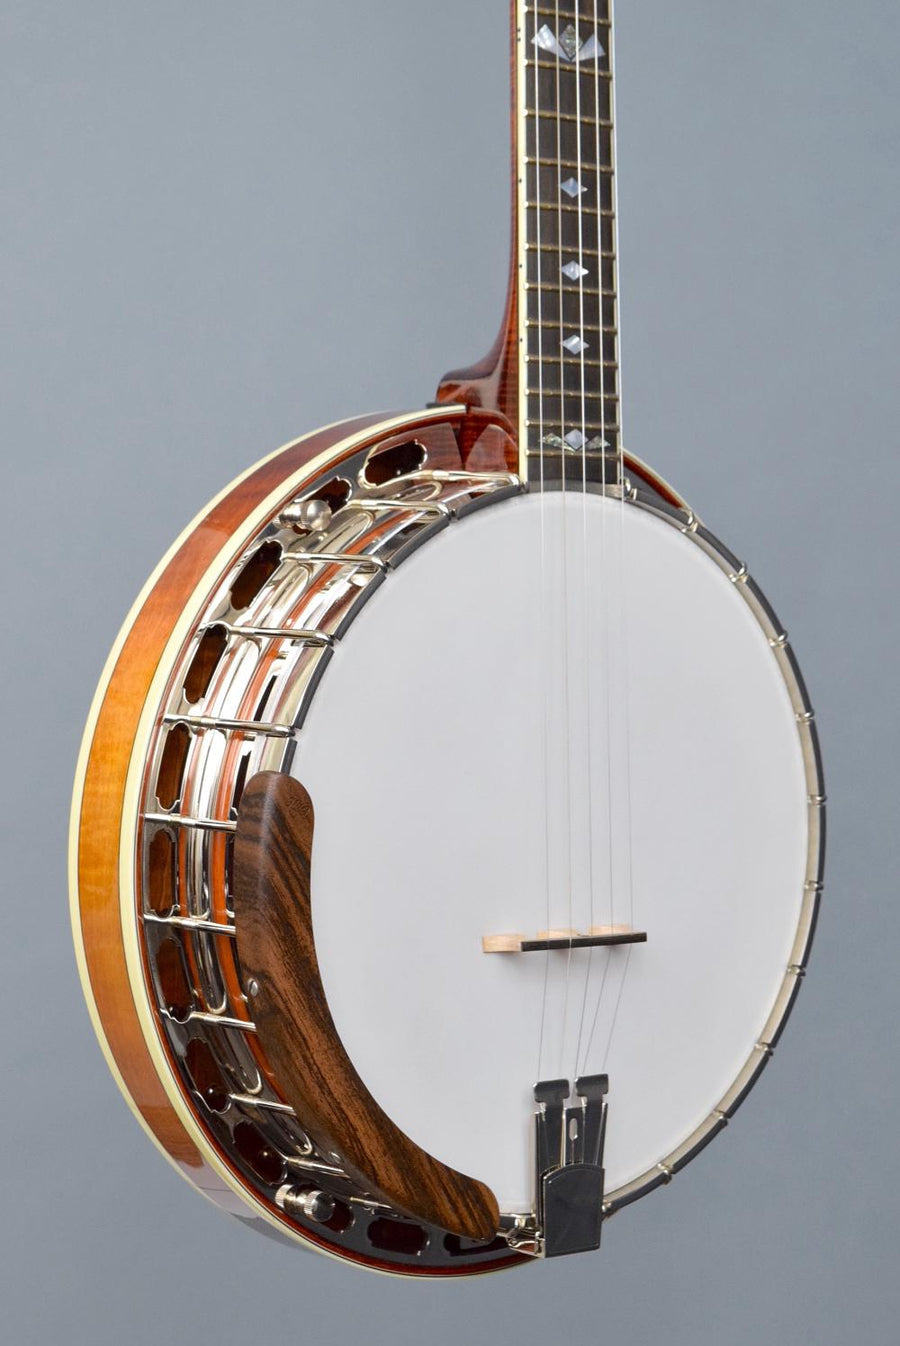 OME Ikon Professional Custom Resonator Banjo (#7272)